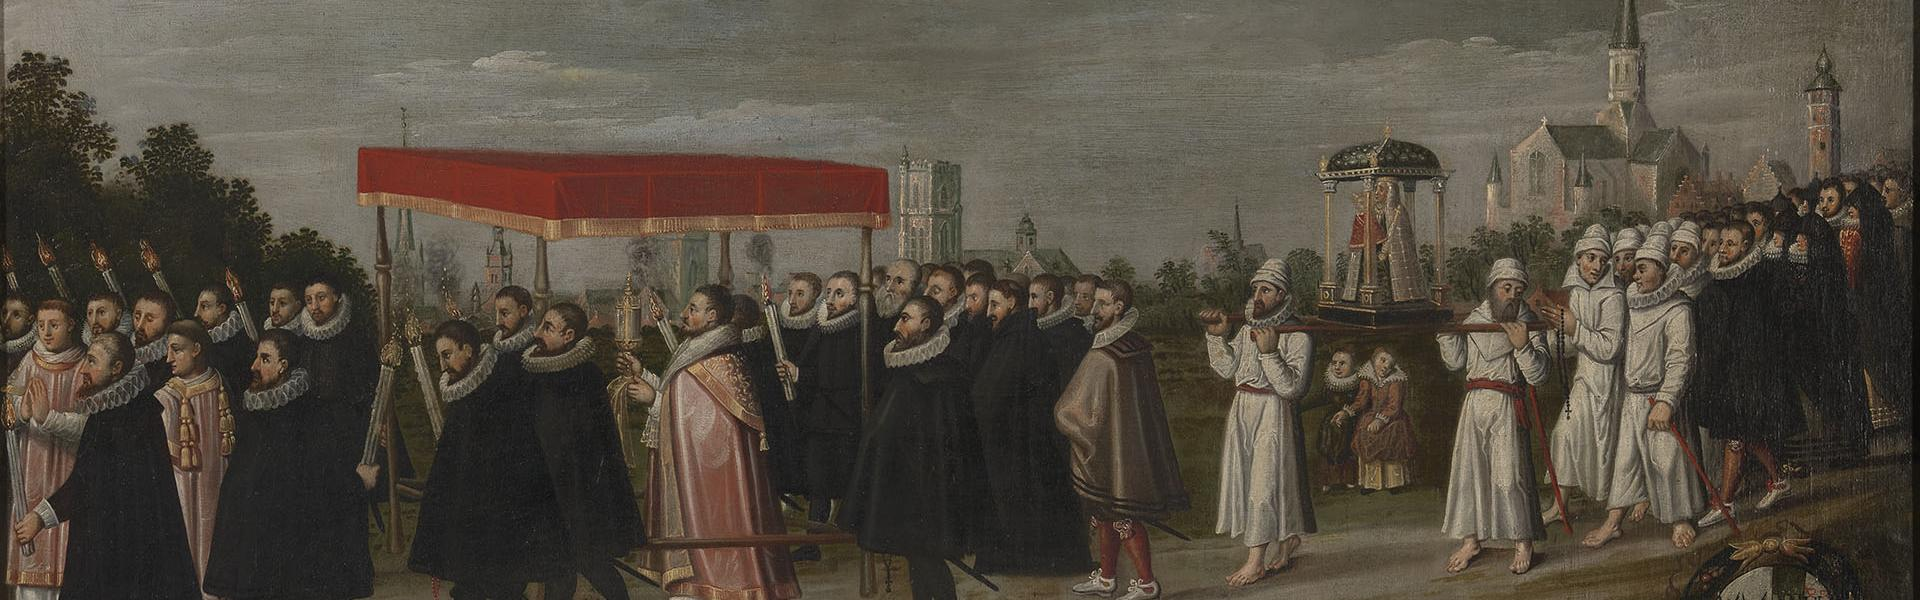 Healing and procession against the plague in 1604